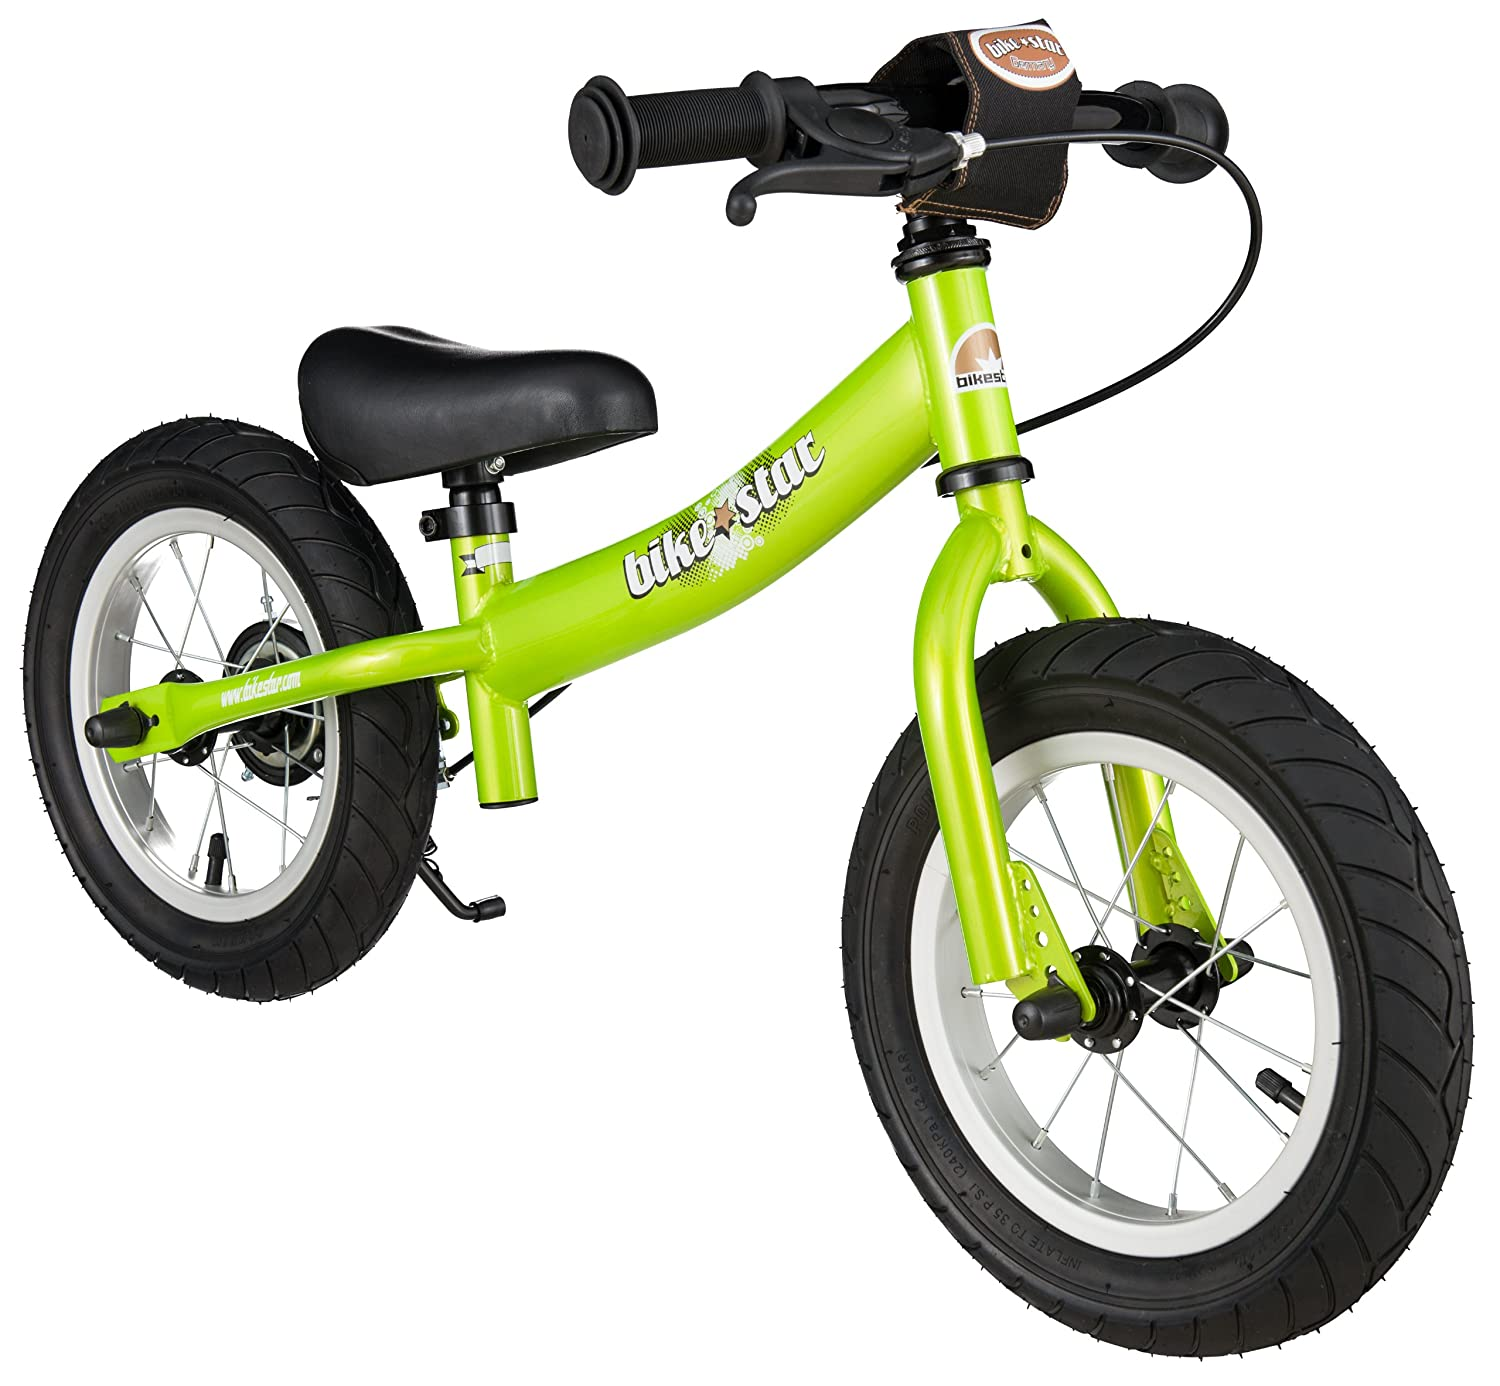 BIKESTAR Original Safety Lightweight Kids First Balance Running Bike with brakes and with air tires for age 3 year old boys and girls | 12 Inch Sport Edition | Brilliant Green Star-Trademarks